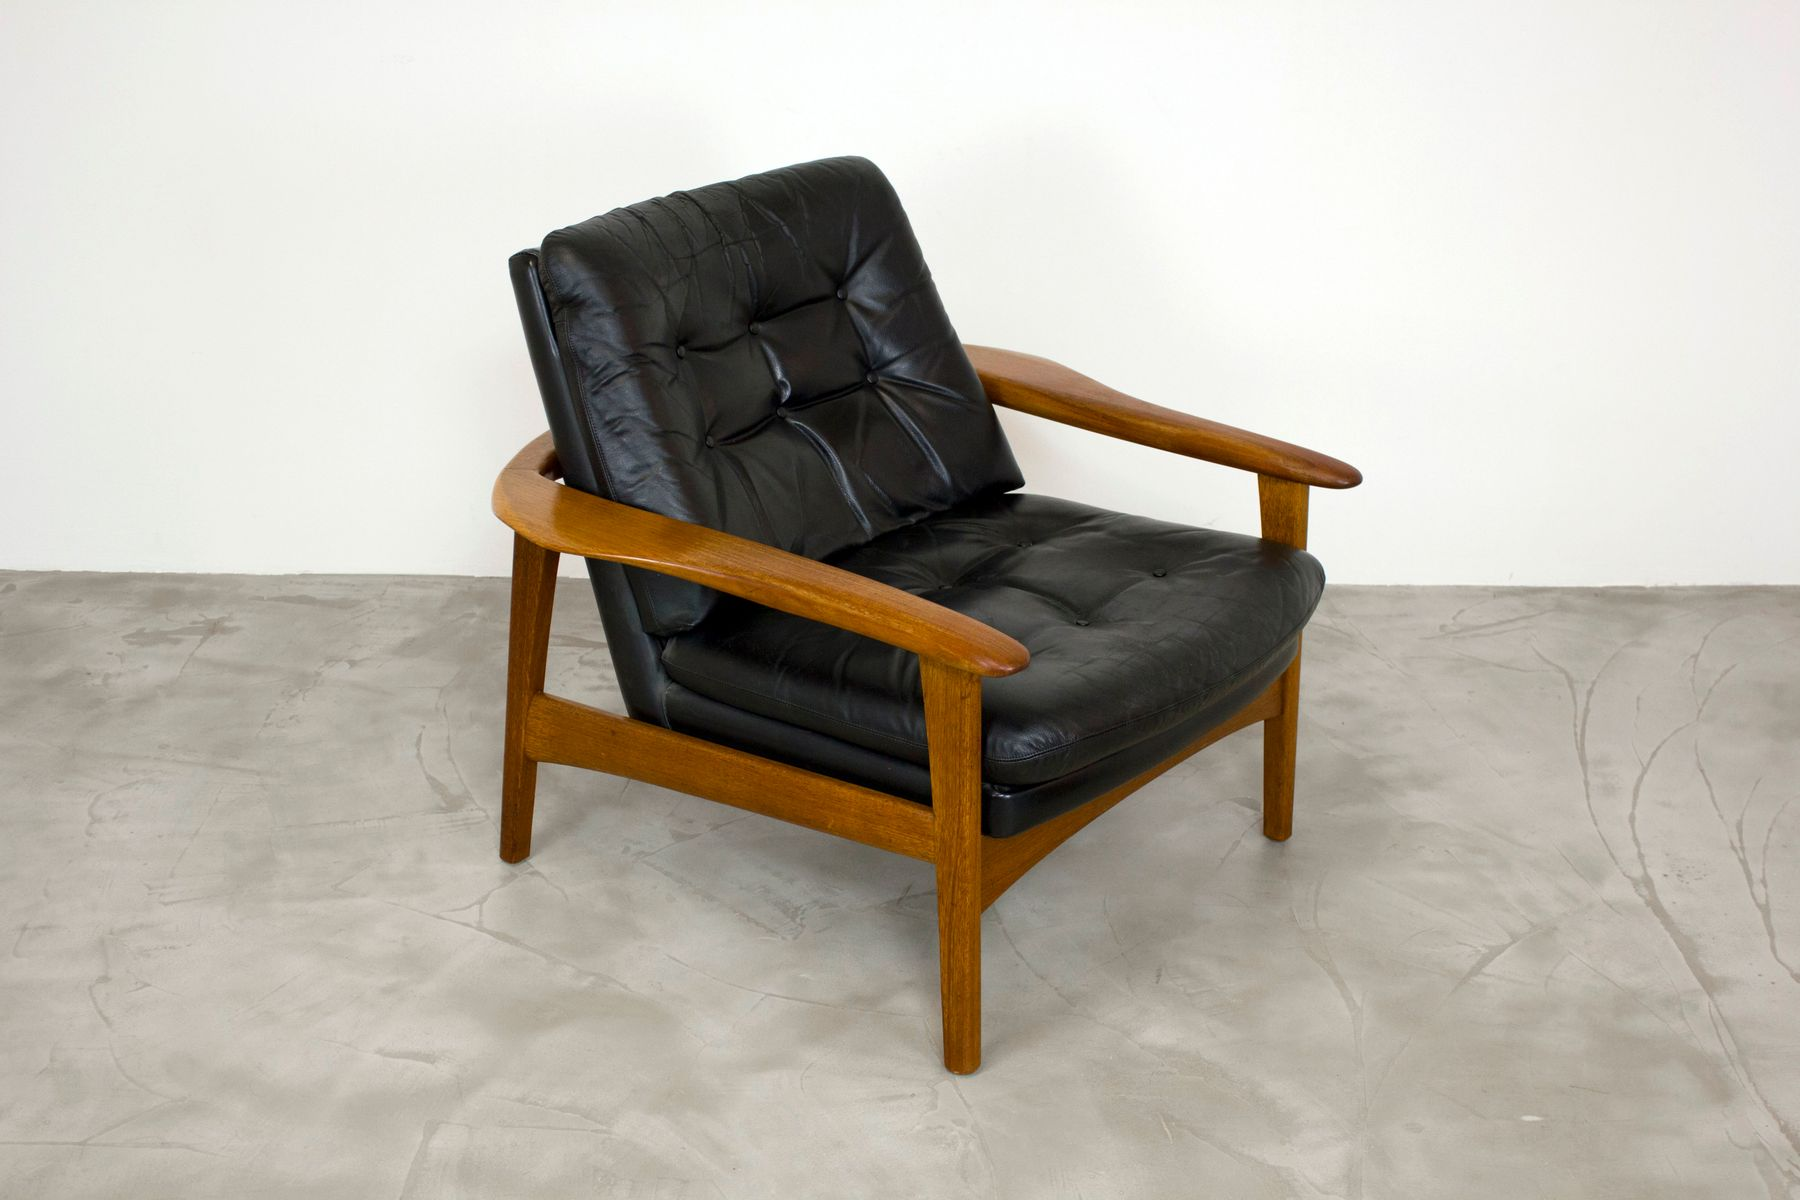 Scandinavian teak leather lounge chair 1960s for sale at pamono - Scandinavian chair ...